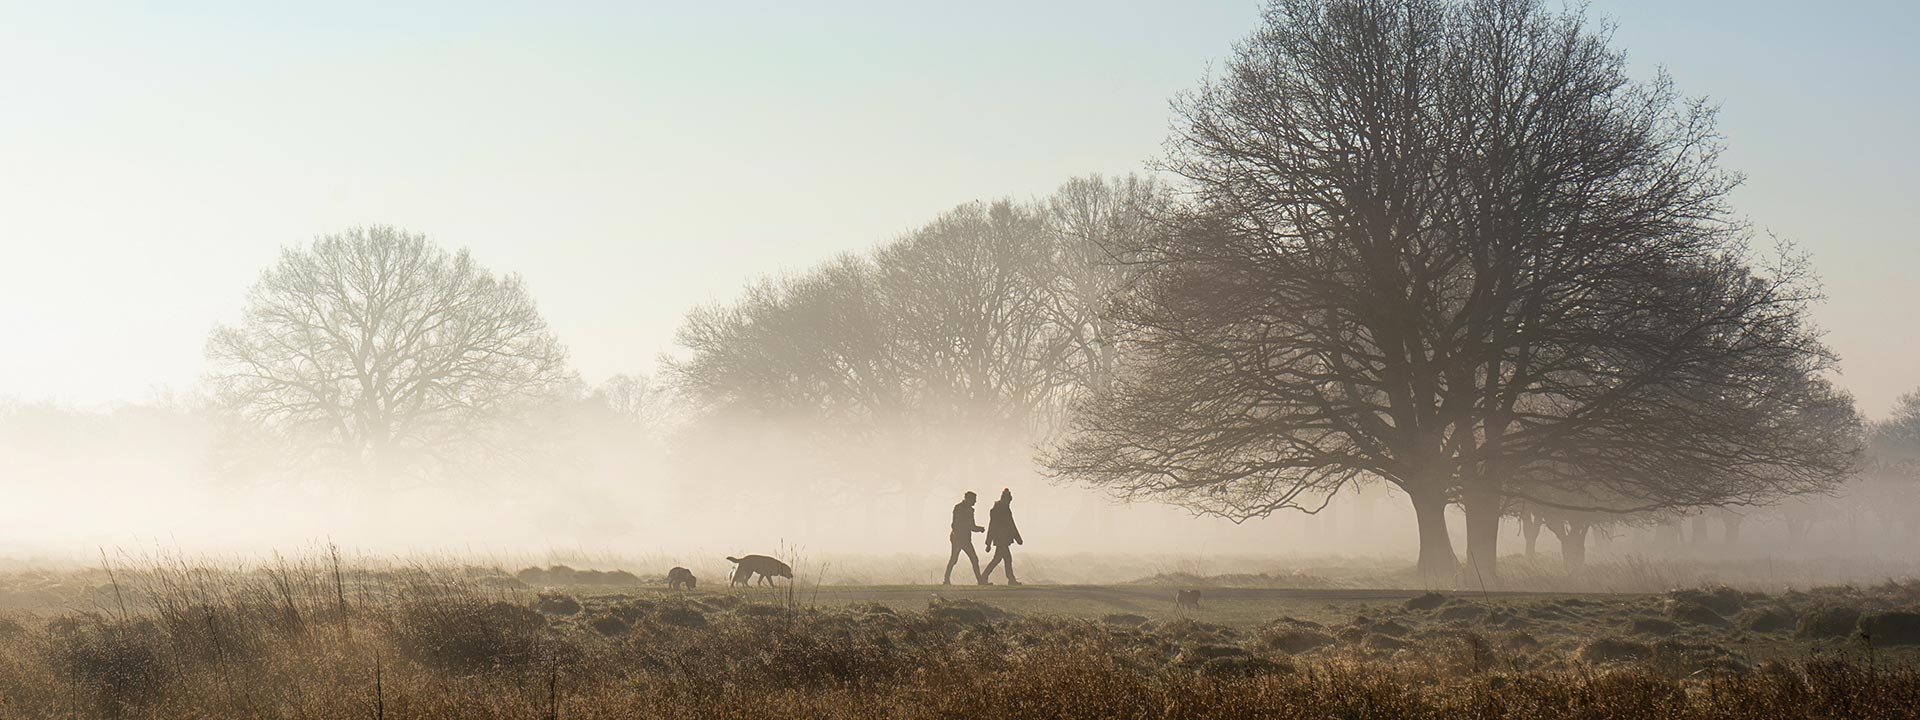 Two people and a dog walking in a foggy field